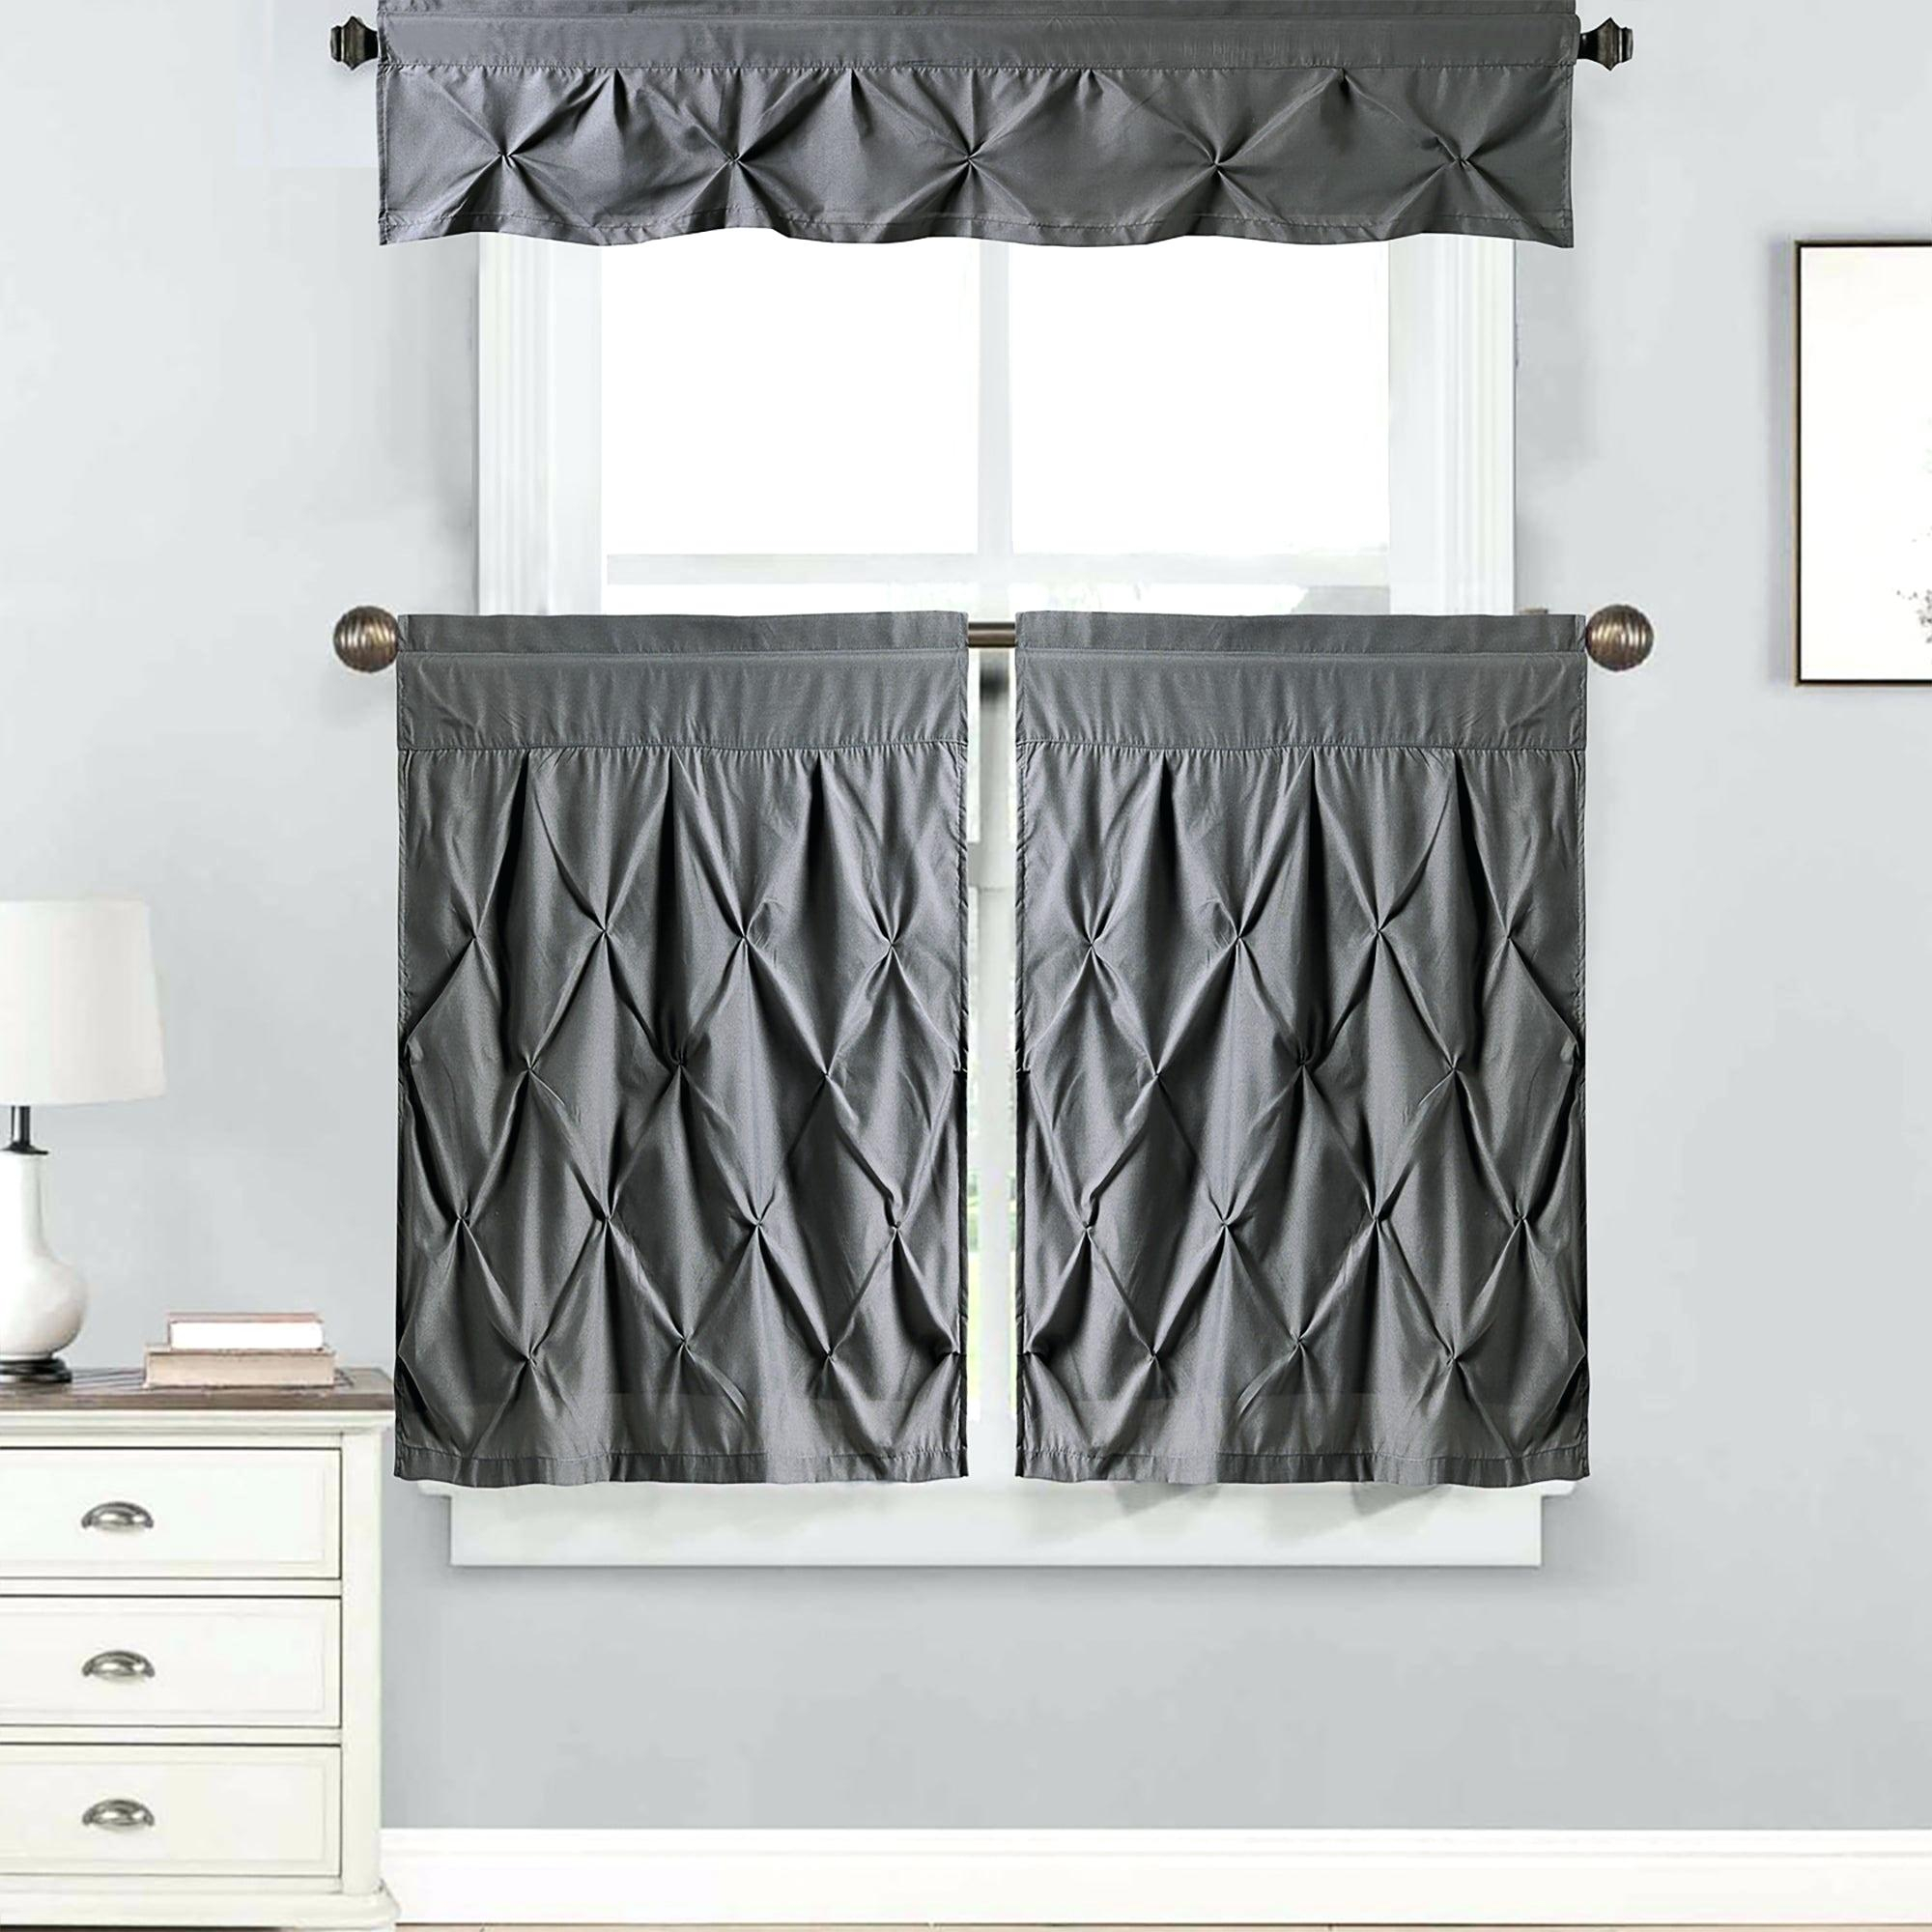 Curtain Sets With Valance – Mnkskin Within Forest Valance And Tier Pair Curtains (View 15 of 20)